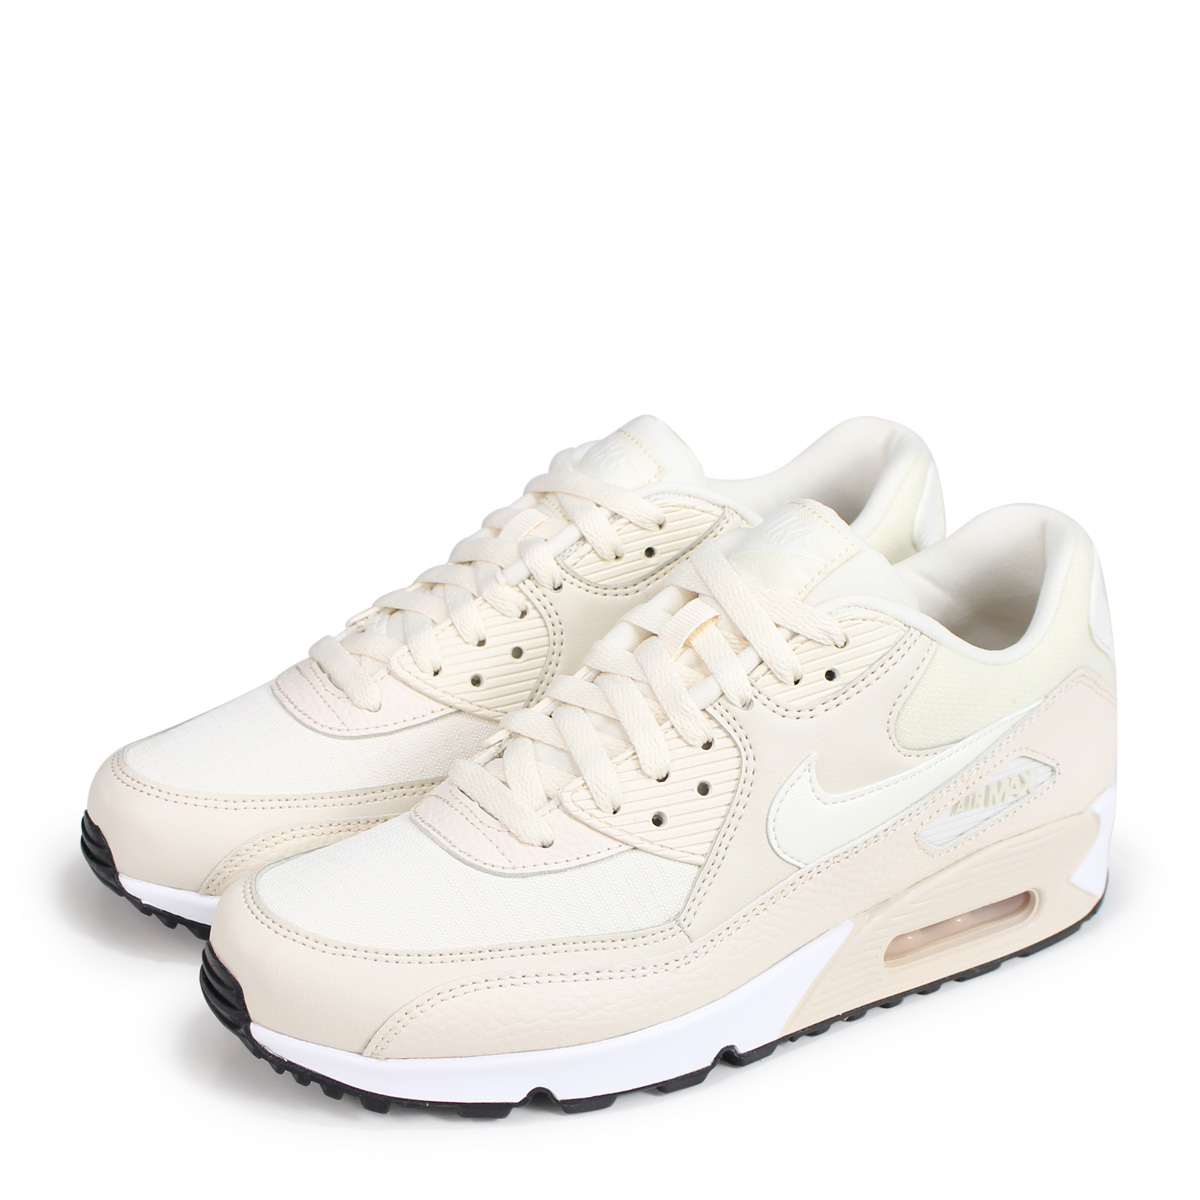 more photos 3b0cd 01fd8 NIKE WMNS AIR MAX 90 Kie Ney AMAX 90 lady s men s sneakers 325,213-213  beige  load planned Shinnyu load in reservation product 10 15 containing    1810